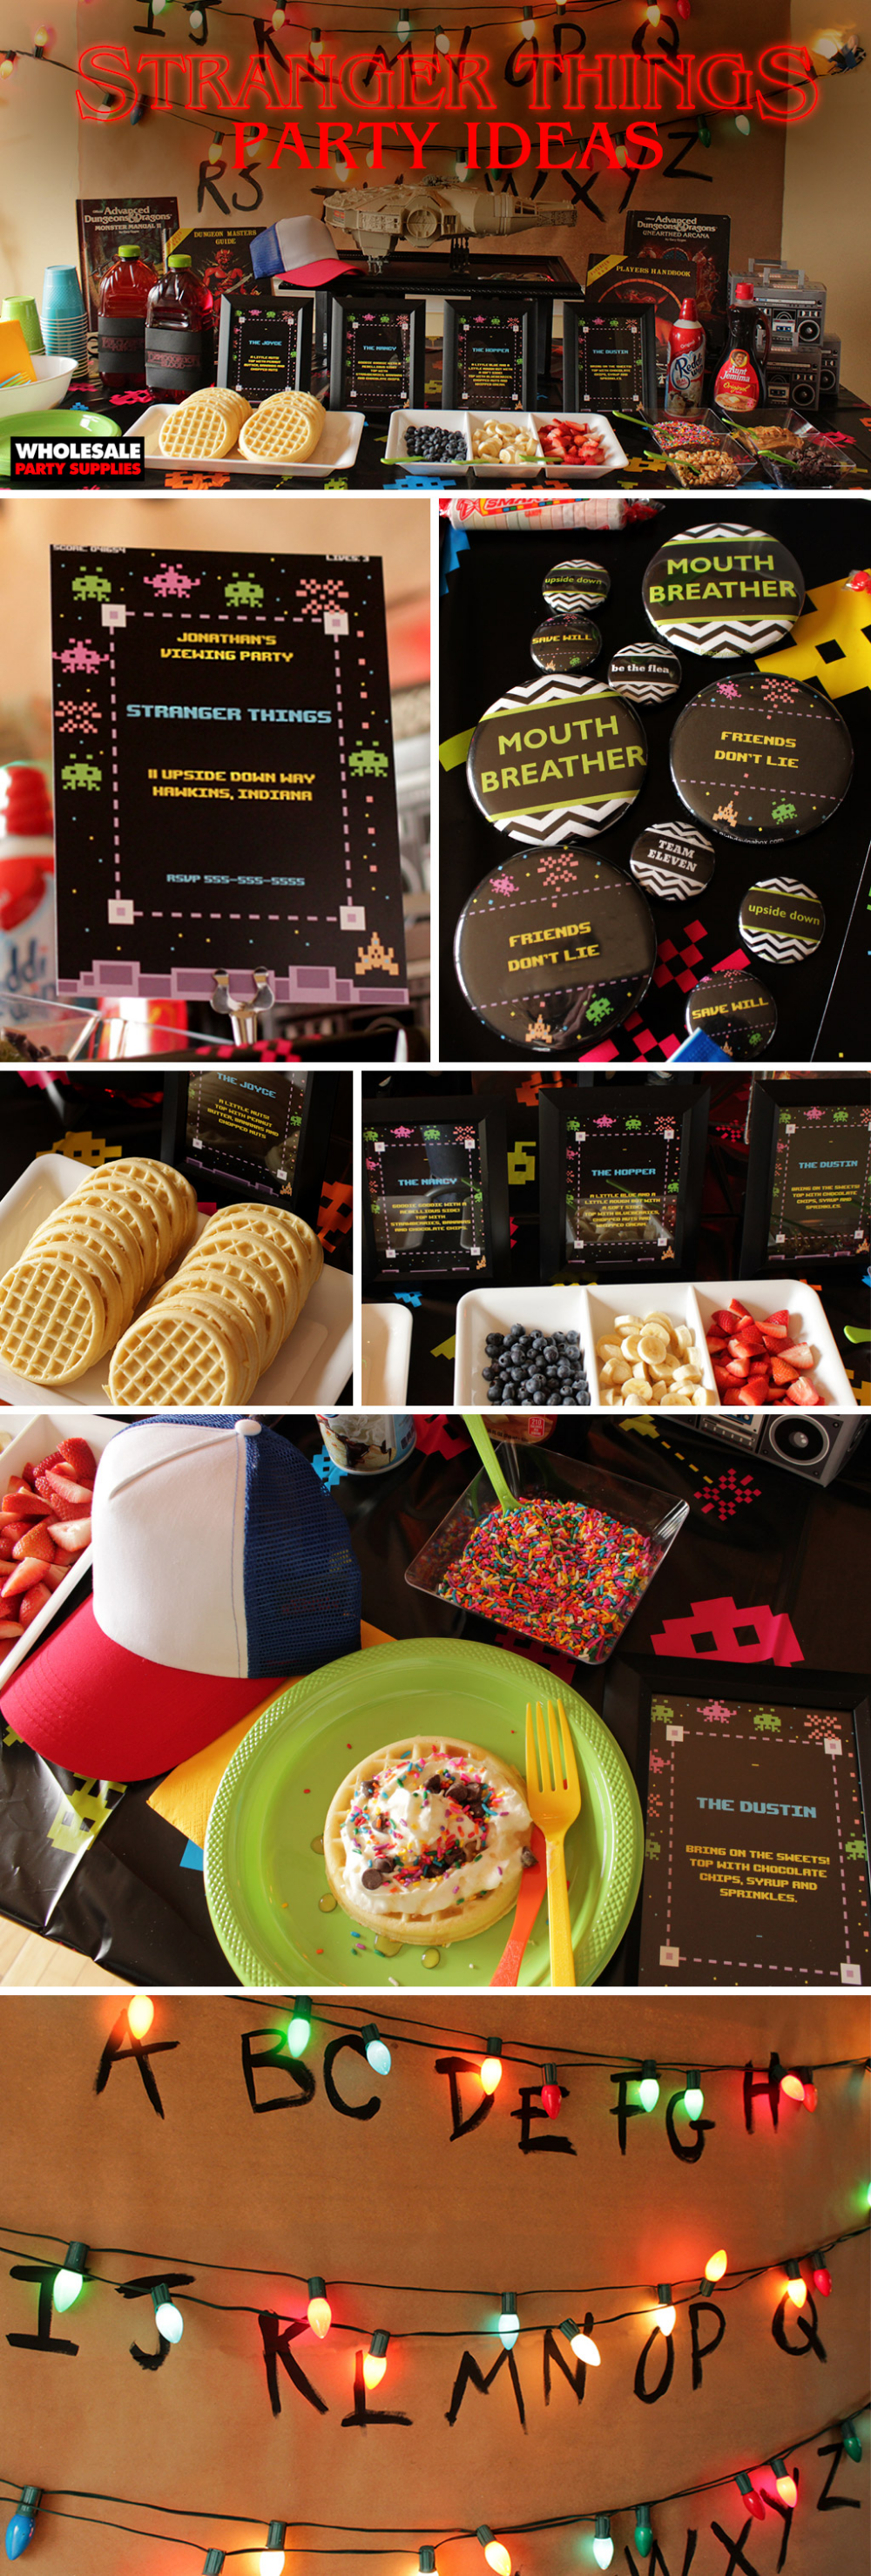 Stranger Things Party | Party Ideas & Activities by Wholesale Party Supplies